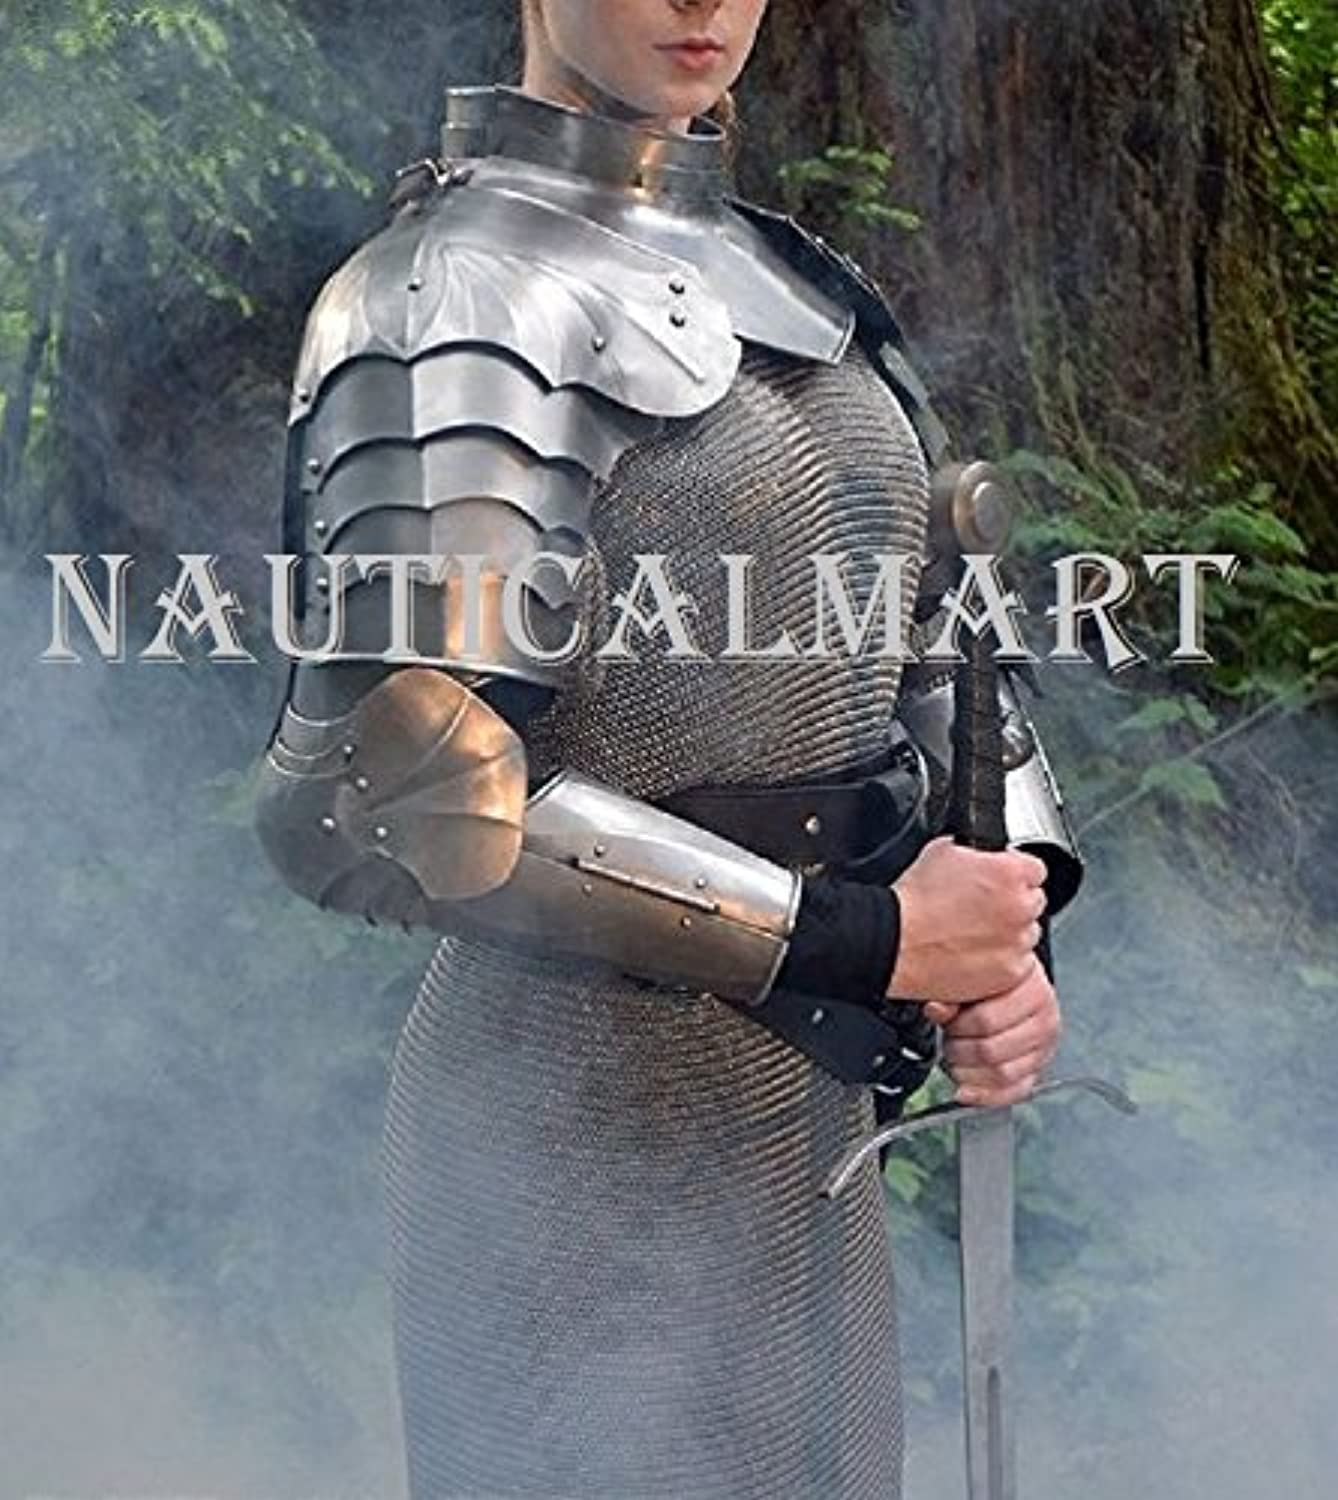 NAUTICALMART Complete Medieval Arms Armor Set with Chainmail